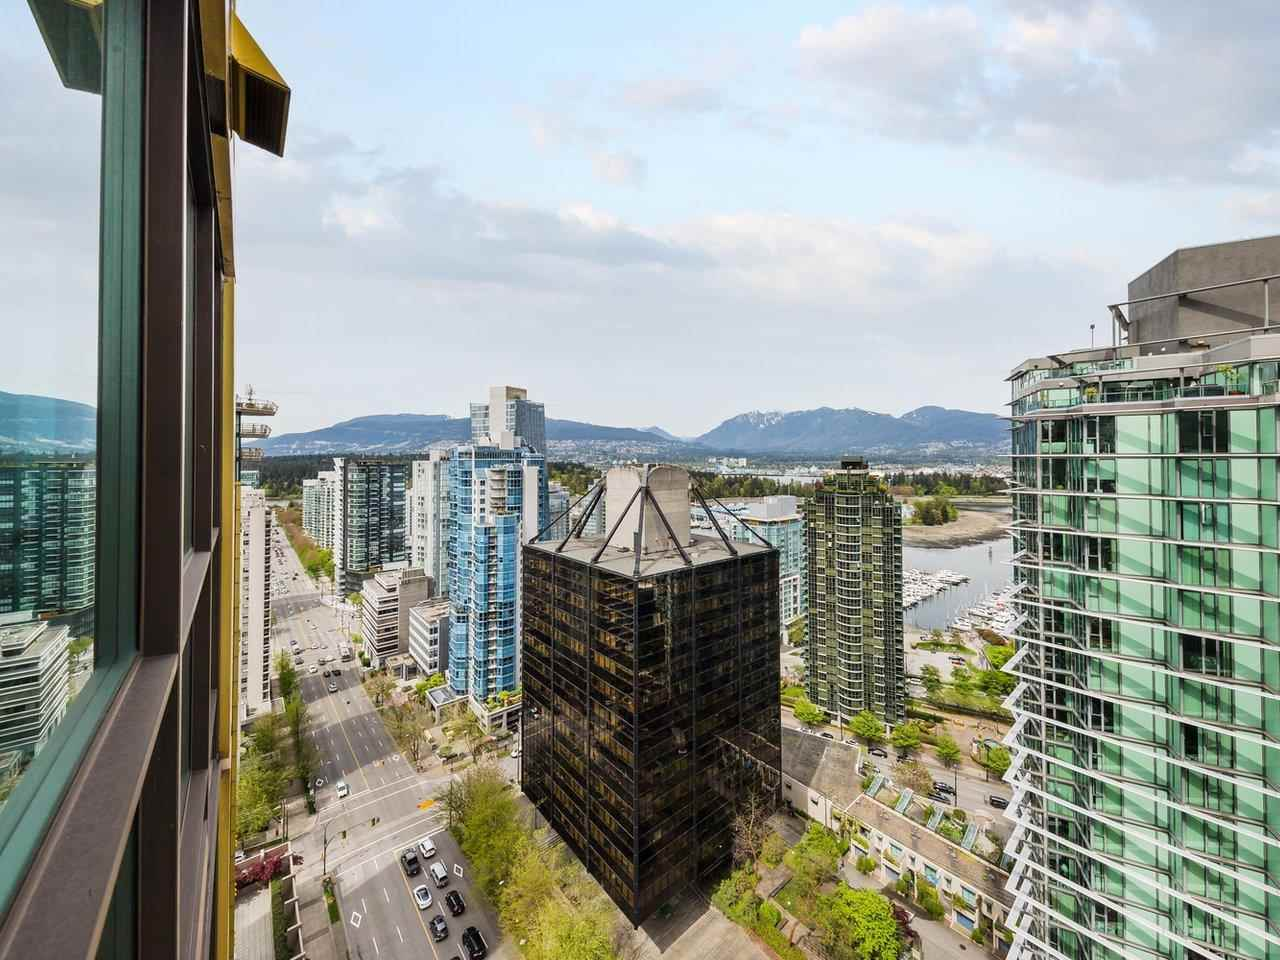 2701 1331 ALBERNI STREET - West End VW Apartment/Condo for sale, 3 Bedrooms (R2576100) - #21